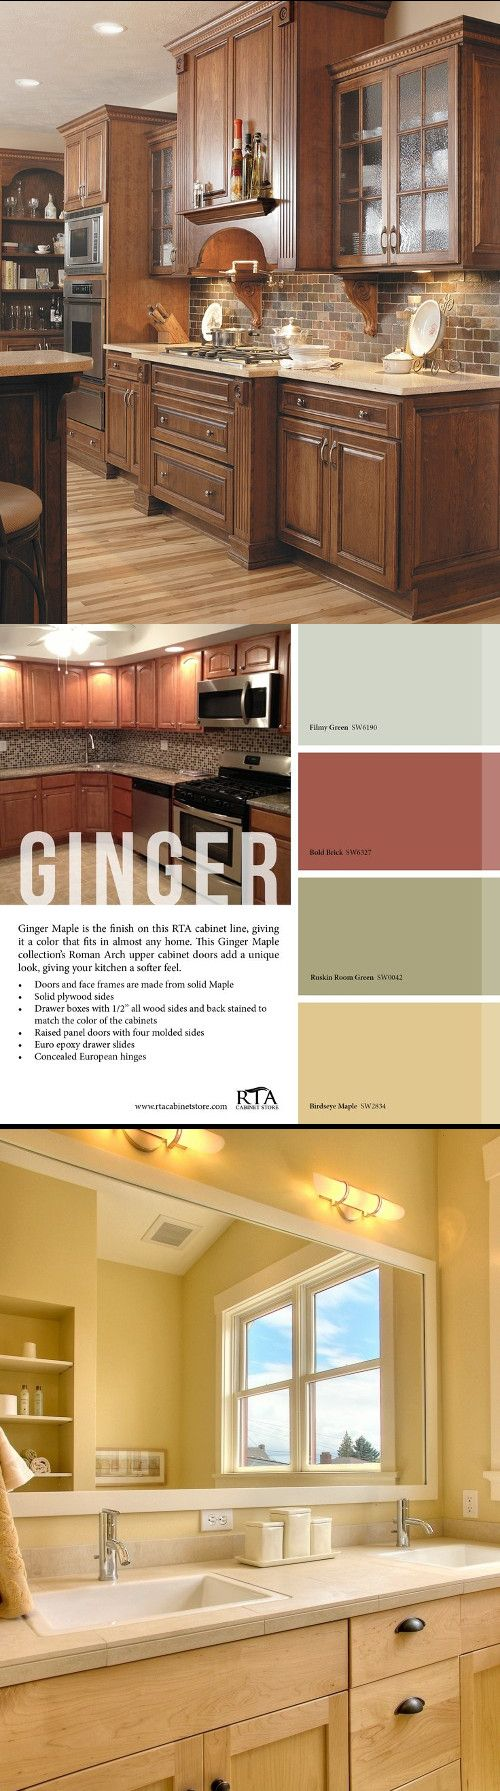 best paint colors images on pinterest